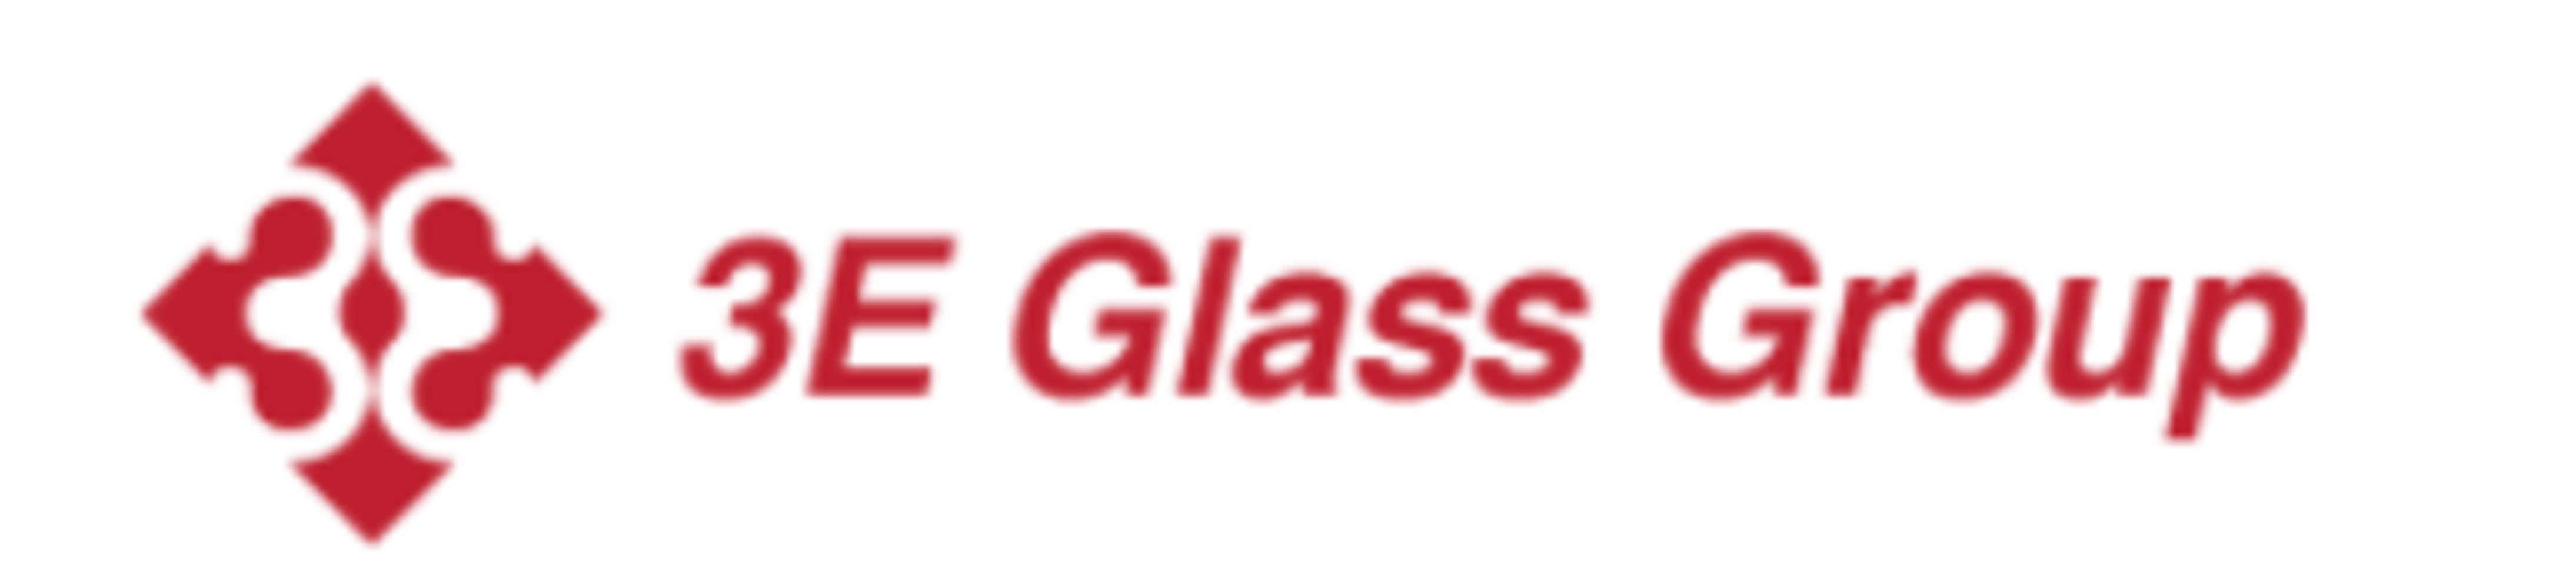 Day 1 - Unreserved 3E Glass (Edmonton) Ltd. Timed Online Bankruptcy Auction